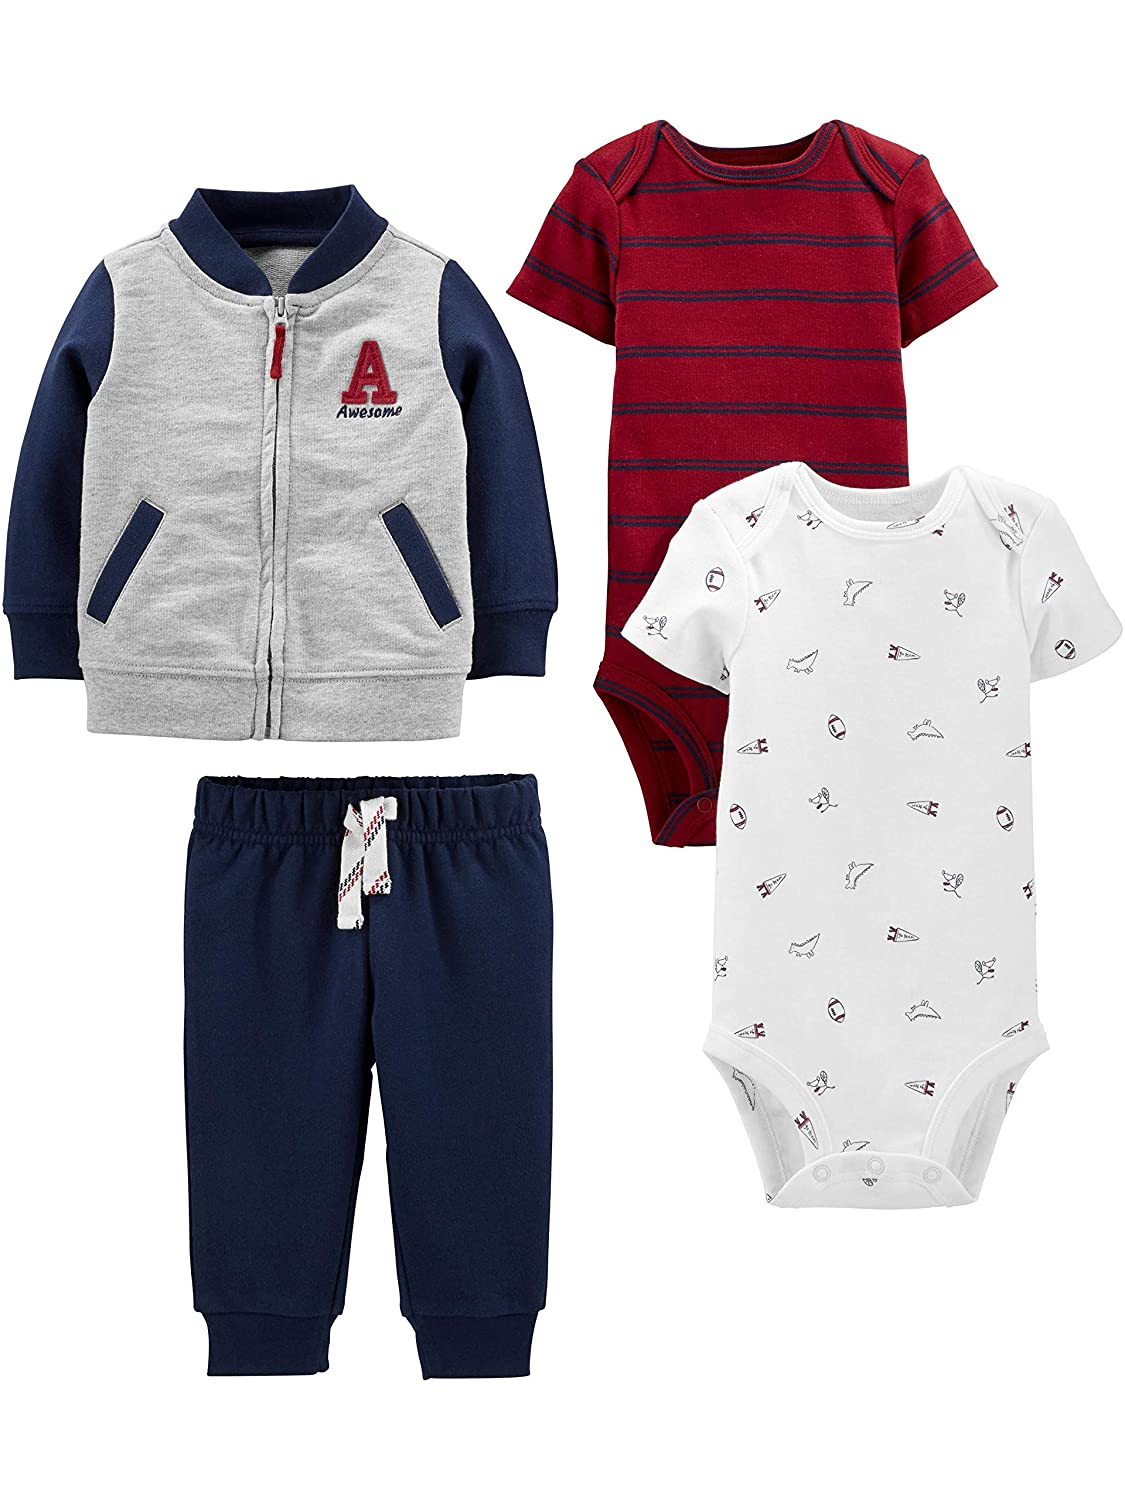 Simple Joys by Carters Baby Boys 4-Piece Fleece Jacket, Pant, and Bodysuit Set